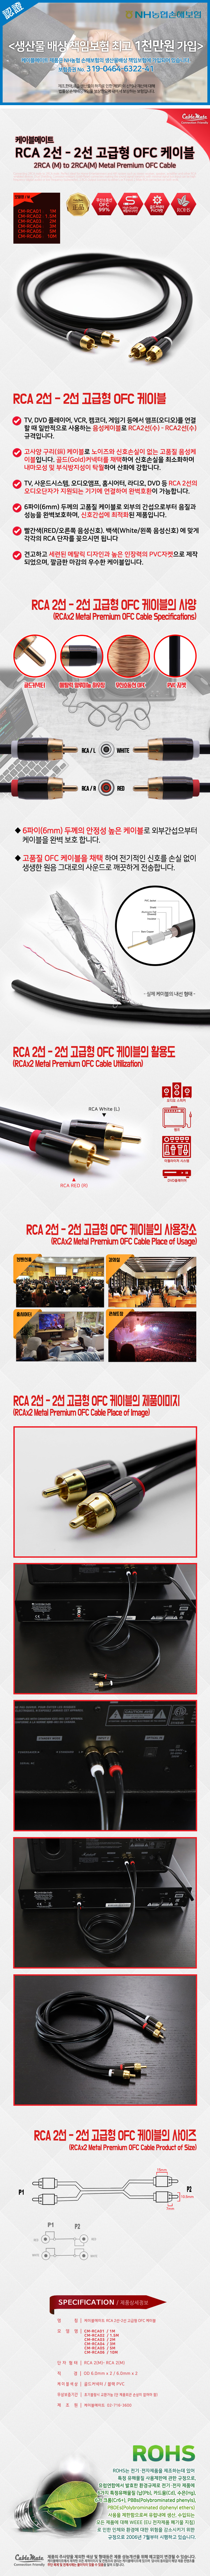 CABLEMATE 2RCA to 2RCA 고급형 케이블 (3m, CM-RCA04)